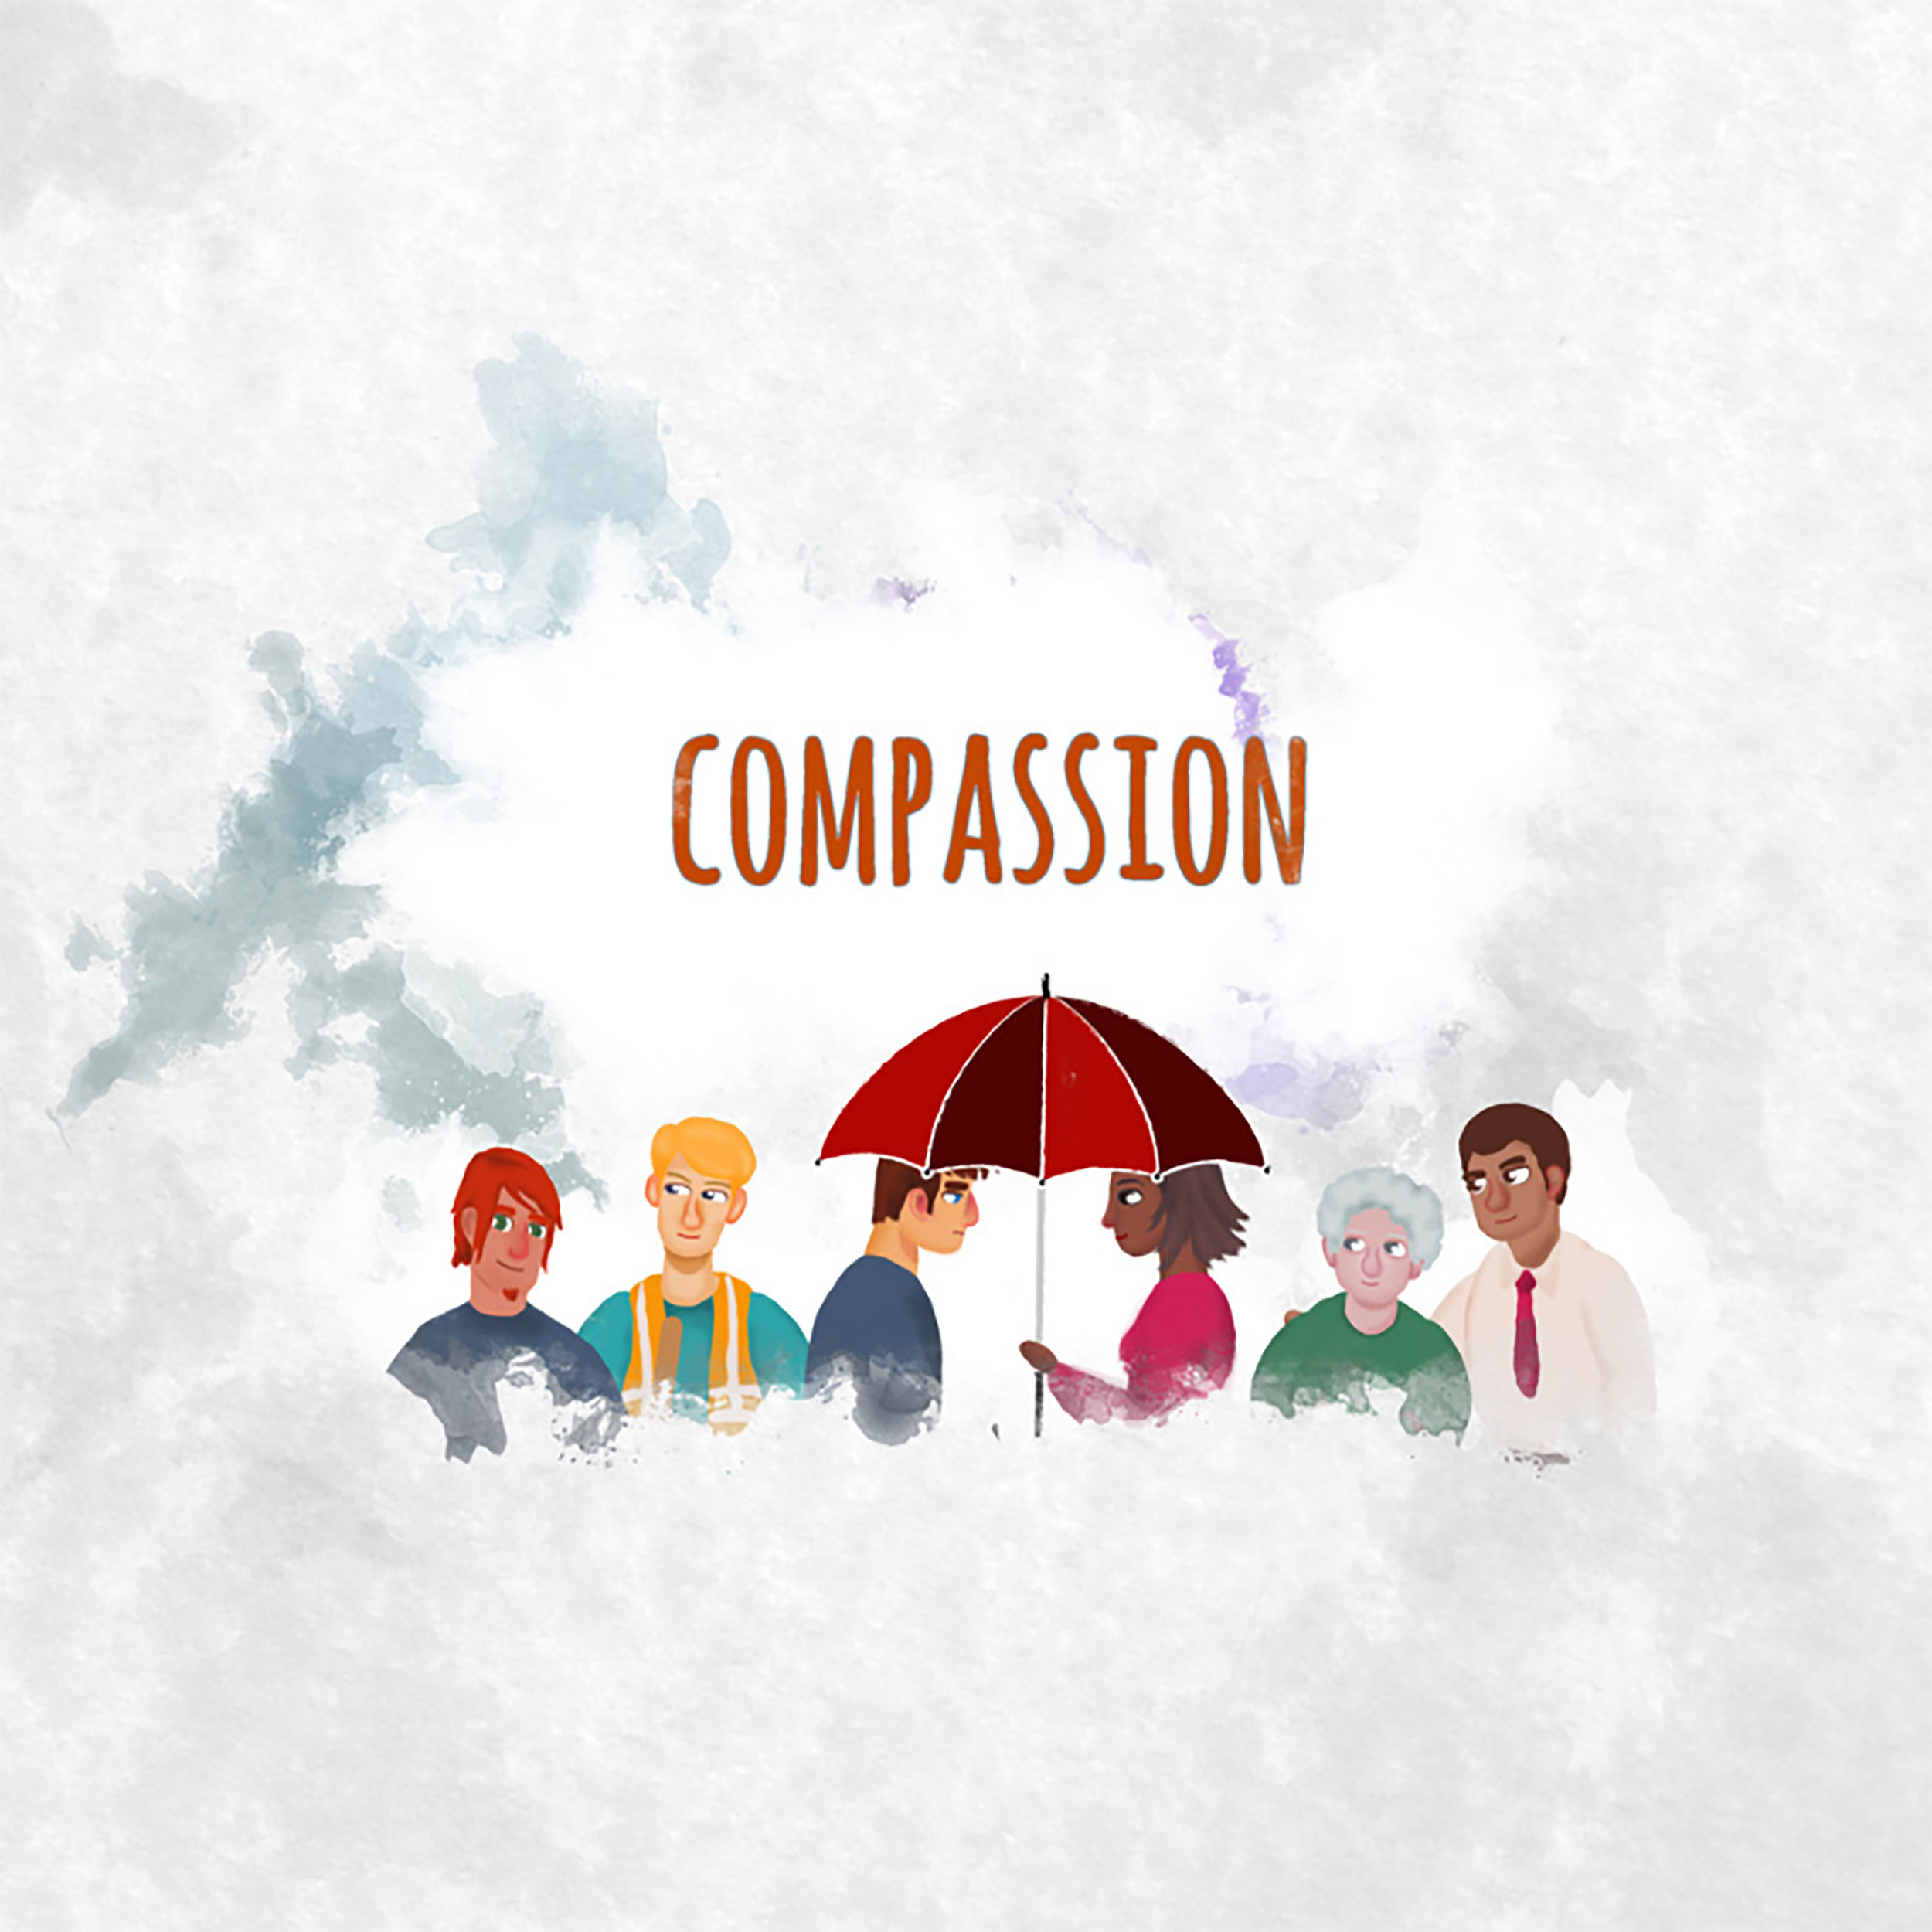 Image shows the word compassion with two people talking under an umbrella, in between two other people on each side